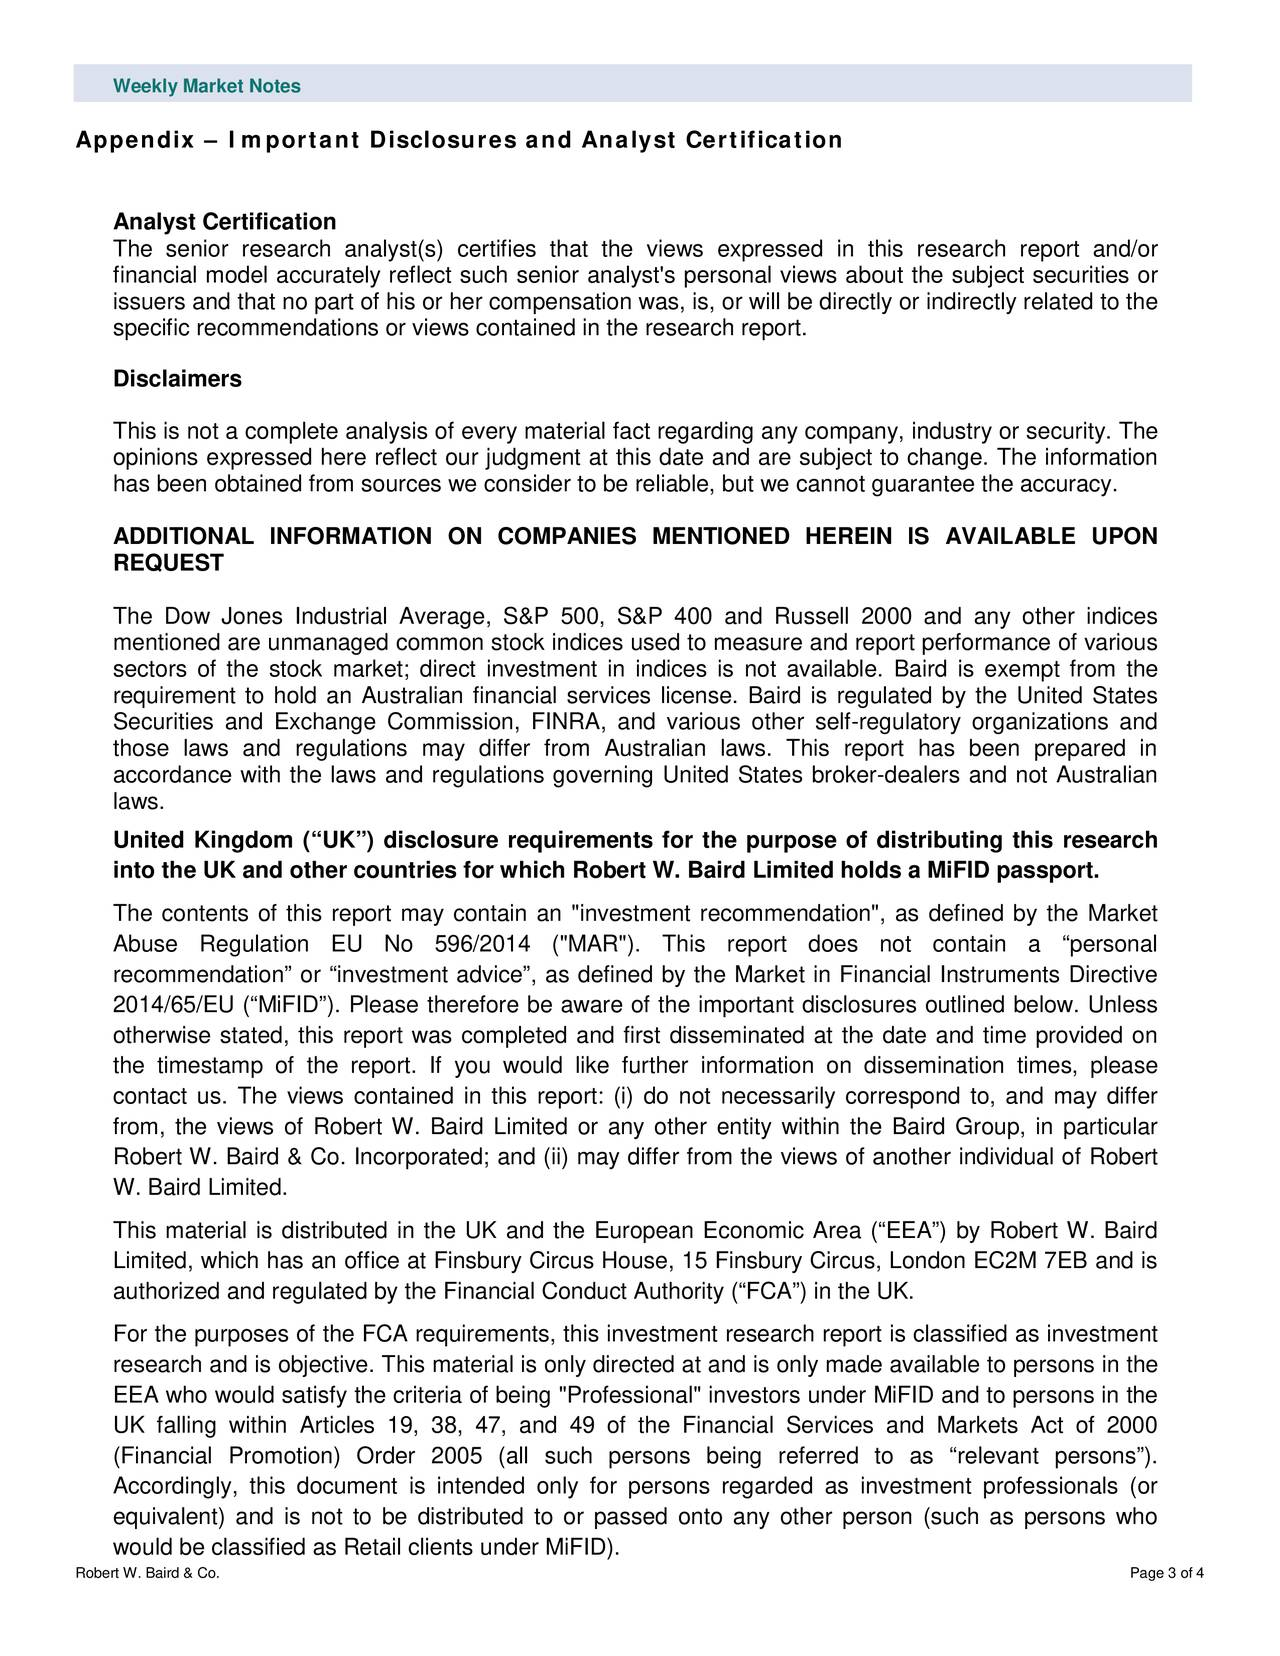 """Appendix – Important Disclosures and Analyst Certification Analyst Certification The senior research analyst(s) certifies that the views expressed in this research report and/or financial model accurately reflect such senior analyst's personal views about the subject securities or issuers and that no part of his or her compensation was, is, or will be directly or indirectly related to the specific recommendations or views contained in the research report. Disclaimers This is not a complete analysis of every material fact regarding any company, industry or security. The opinions expressed here reflect our judgment at this date and are subject to change. The information has been obtained from sources we consider to be reliable, but we cannot guarantee the accuracy. ADDITIONAL INFORMATION ON COMPANIES MENTIONED HEREIN IS AVAILABLE UPON REQUEST The Dow Jones Industrial Average, S&P 500, S&P 400 and Russell 2000 and any other indices mentioned are unmanaged common stock indices used to measure and report performance of various sectors of the stock market; direct investment in indices is not available. Baird is exempt from the requirement to hold an Australian financial services license. Baird is regulated by the United States Securities and Exchange Commiss ion, FINRA, and various other self -regulatory organizations and those laws and regulations may differ from Australian laws. This report has been prepared in accordance with the laws and regulations governing United States broker -dealers and not Australian laws. United Kingdom (""""UK"""") disclosure requirements for the purpose of distributing this research into the UK and other countries for which Robert W. Baird Limited holds a MiFID passport. The contents of this report may contain an """"investment recommendatio n"""", as defined by the Market Abuse Regulation EU No 596/2014 (""""MAR""""). This report does not contain a """"personal recommendation"""" or """"investment advice"""", as defined by the Market in Financial Instruments Directive 2"""